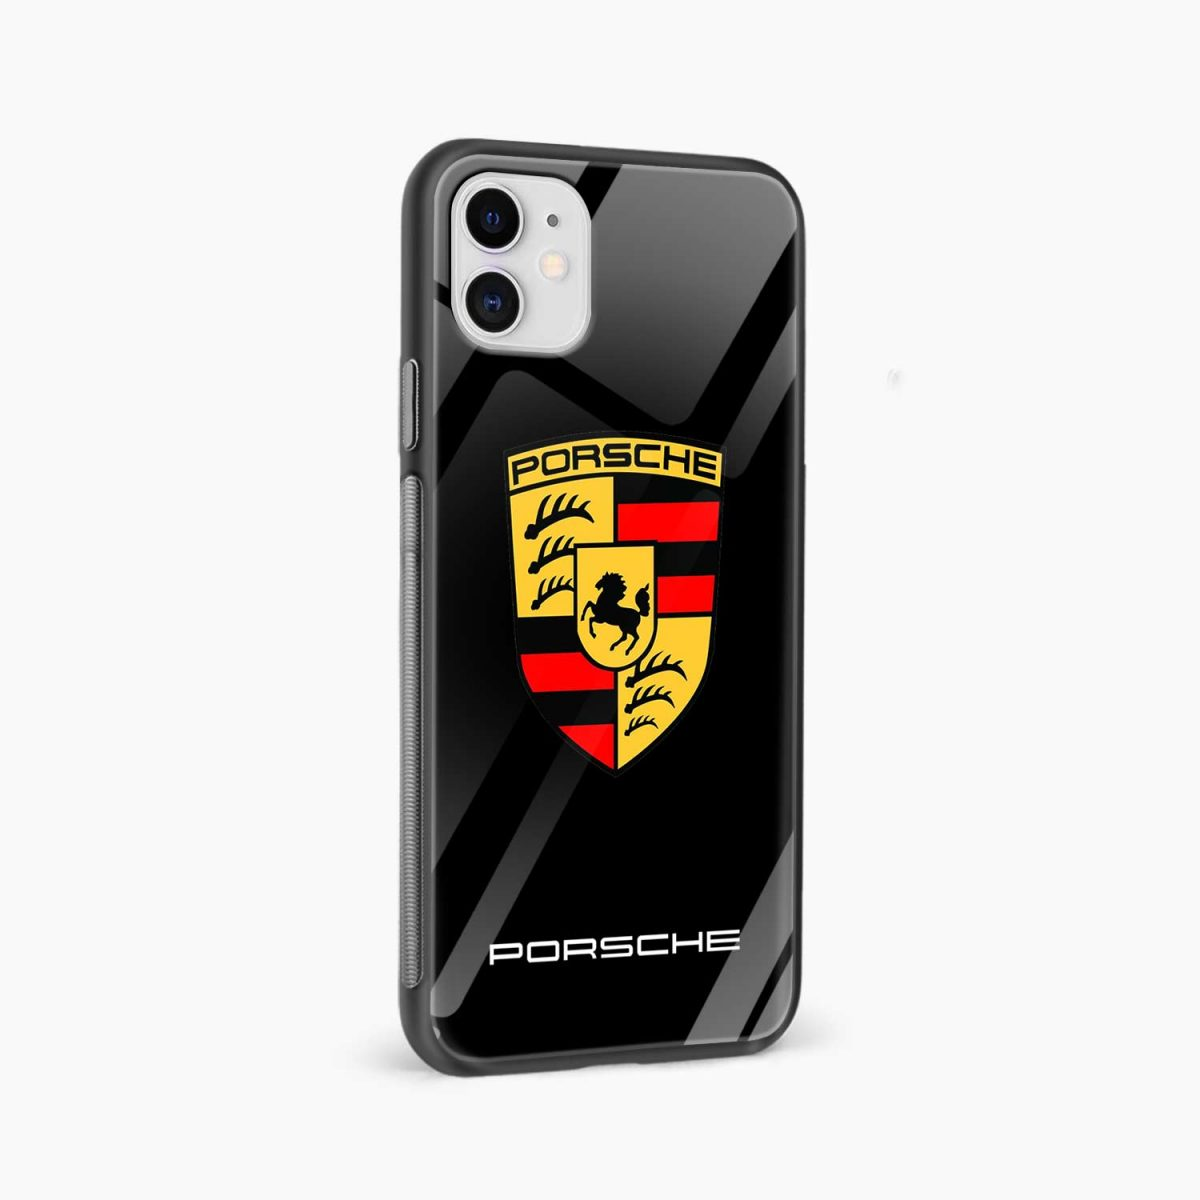 prosche iphone back cover side view